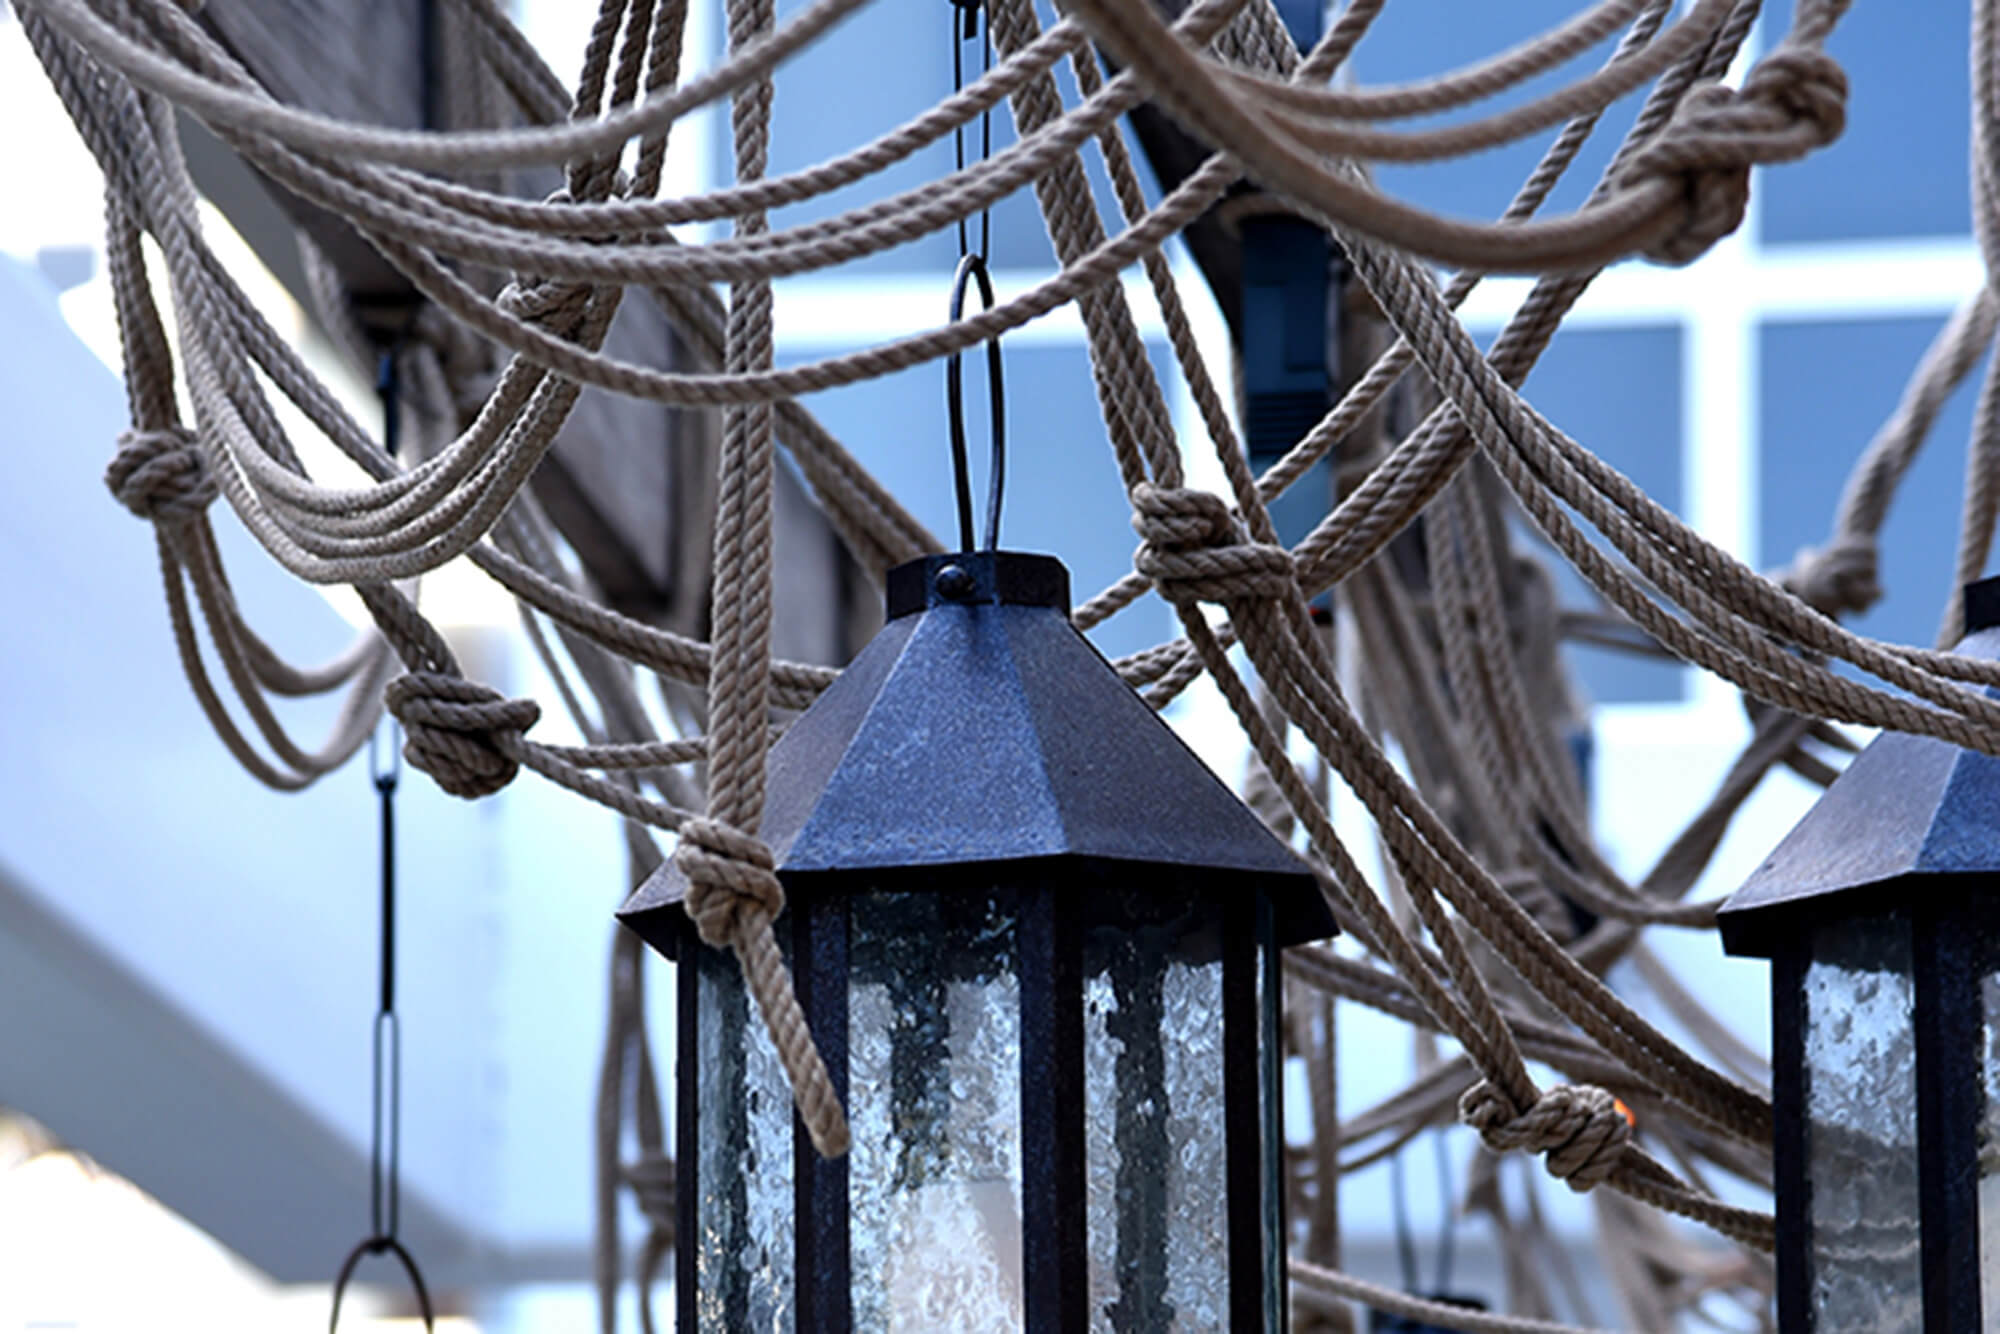 Sunbrella Rope adds visual interest to lanterns hanging outdoors